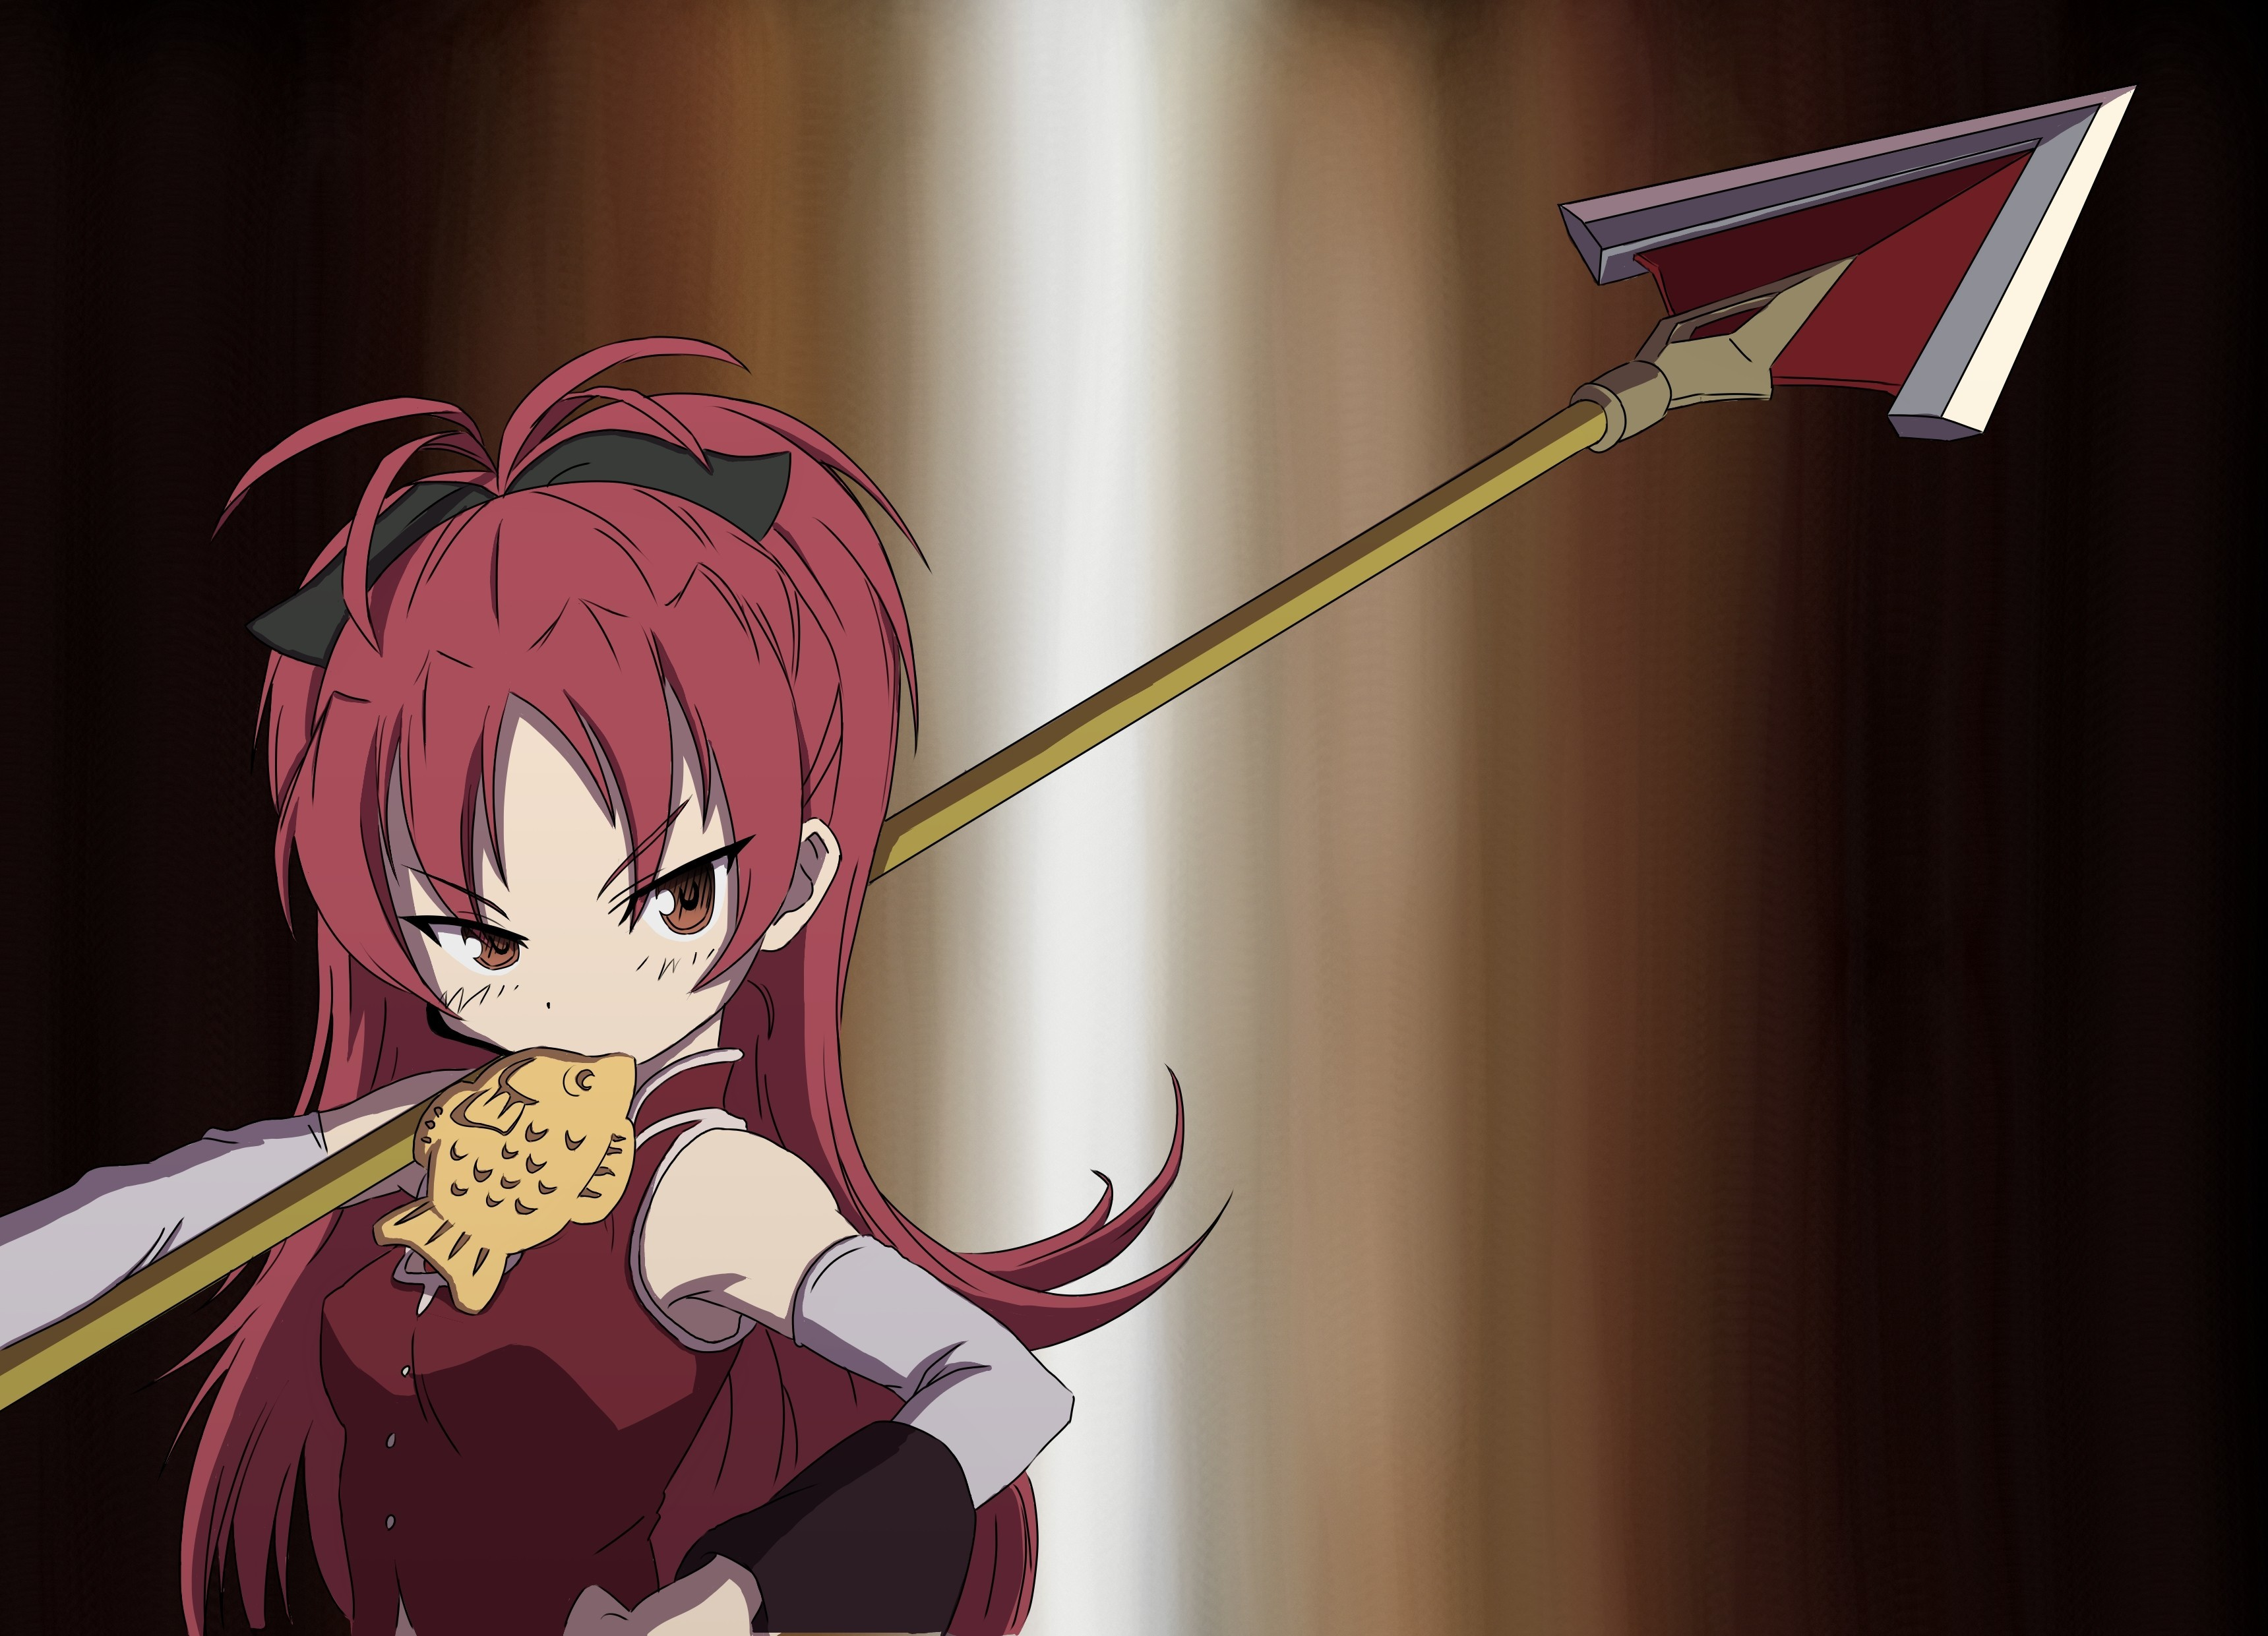 Anime spears ponytails anime HD Wallpaper